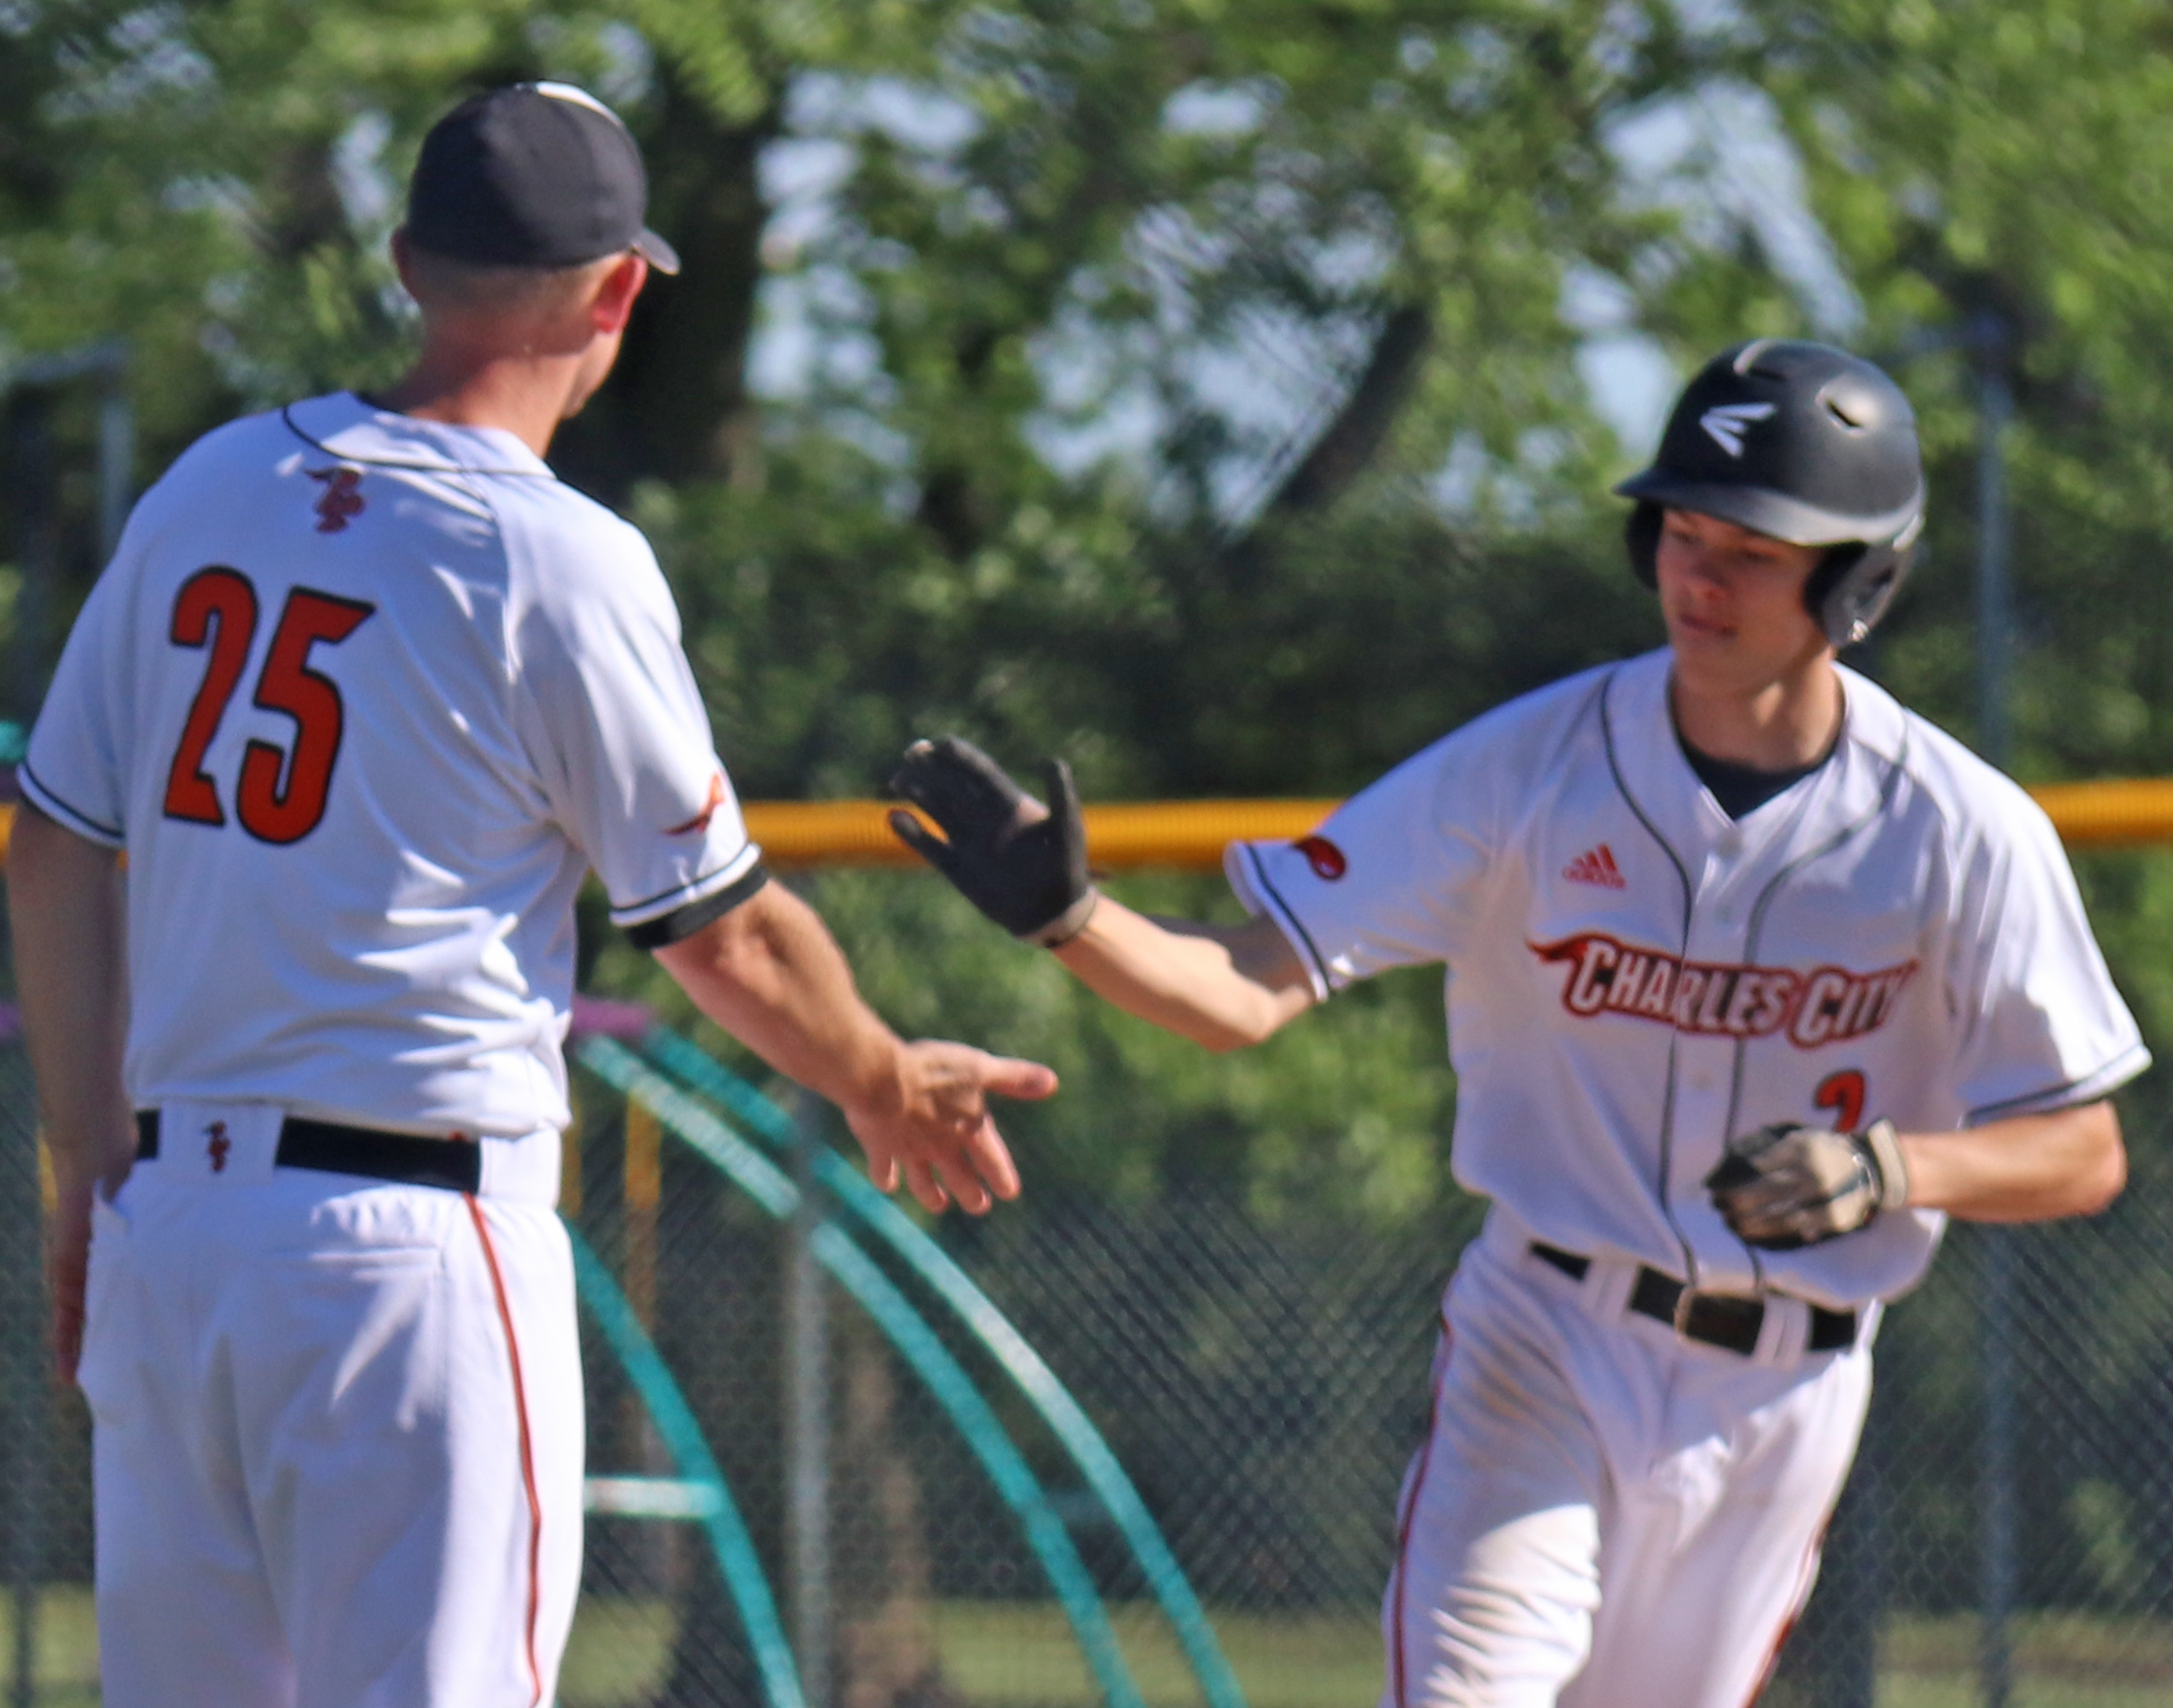 Comets inflict damage during DH sweep of Cadets